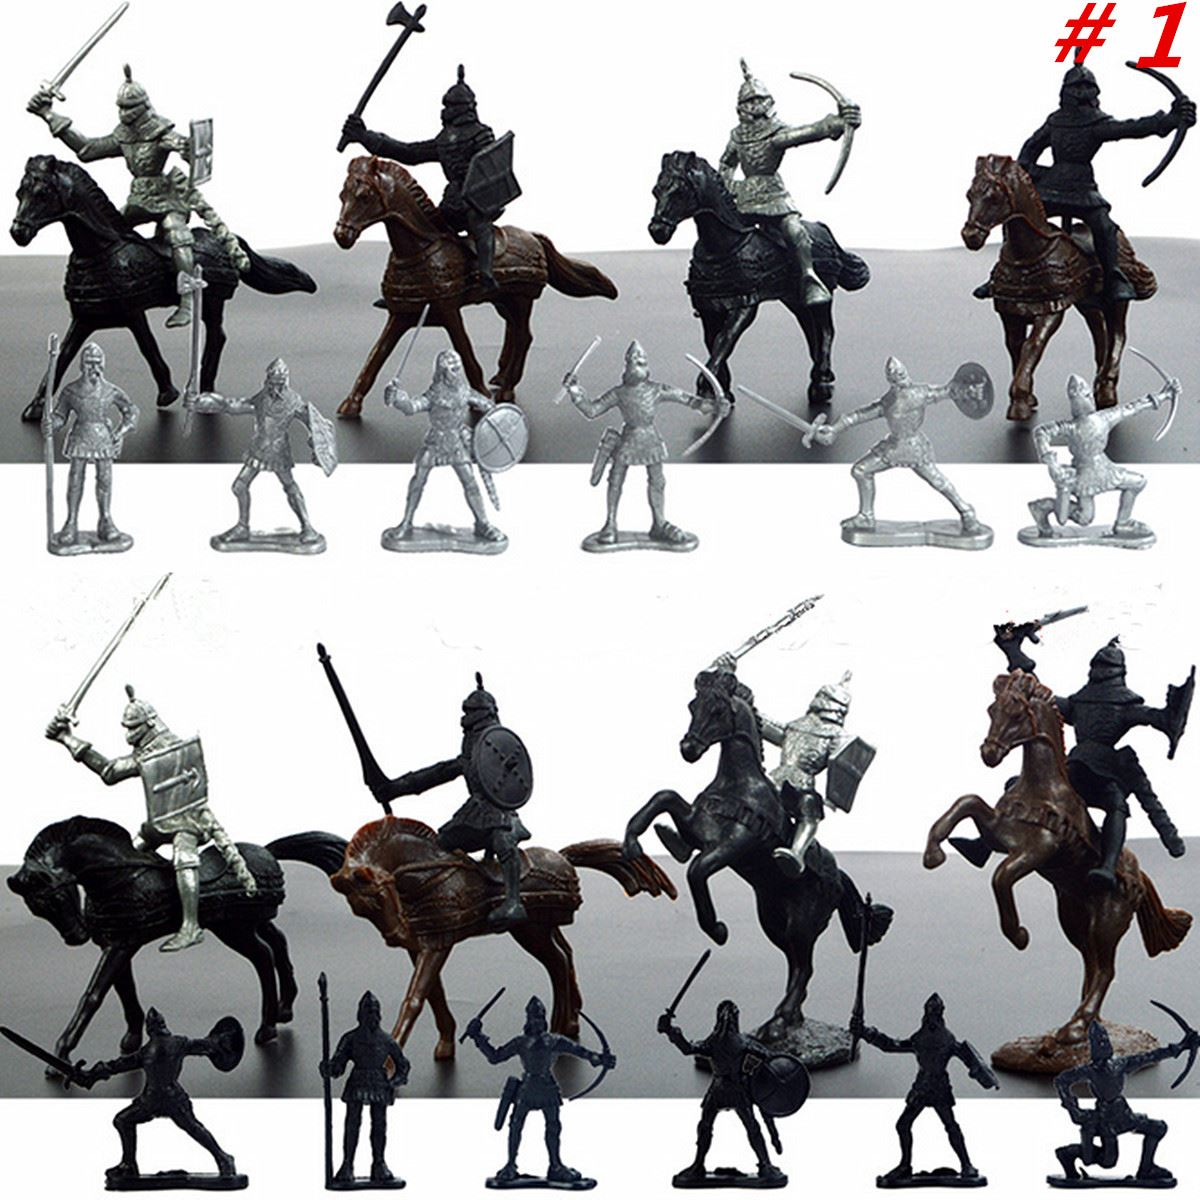 28pcs/set Knights Warrior Horses Medieval Toy Soldiers Figures Playset Mini Model Toys Gift Decor For Children Adult emotional healing for horses